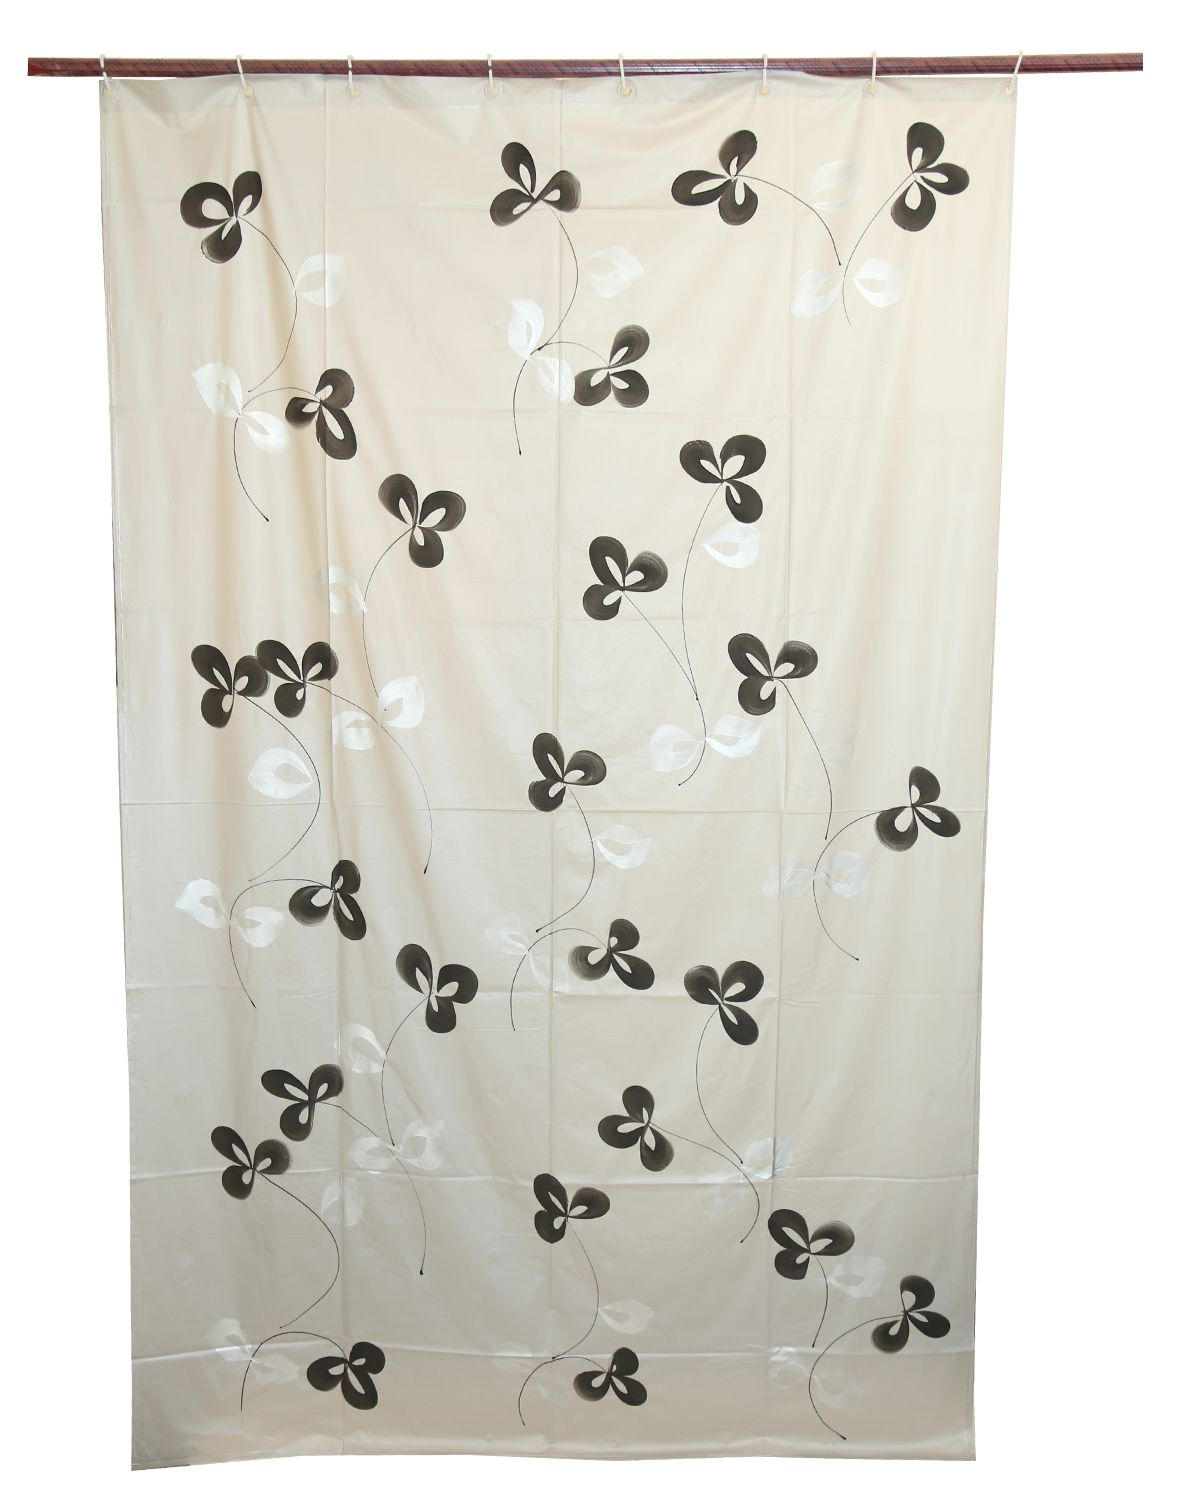 Kuber Industries™ Grey Floral Design PVC Premium Shower Curtain - 7 Feet -84*54 Inches- 8 Hooks (SHWC02)